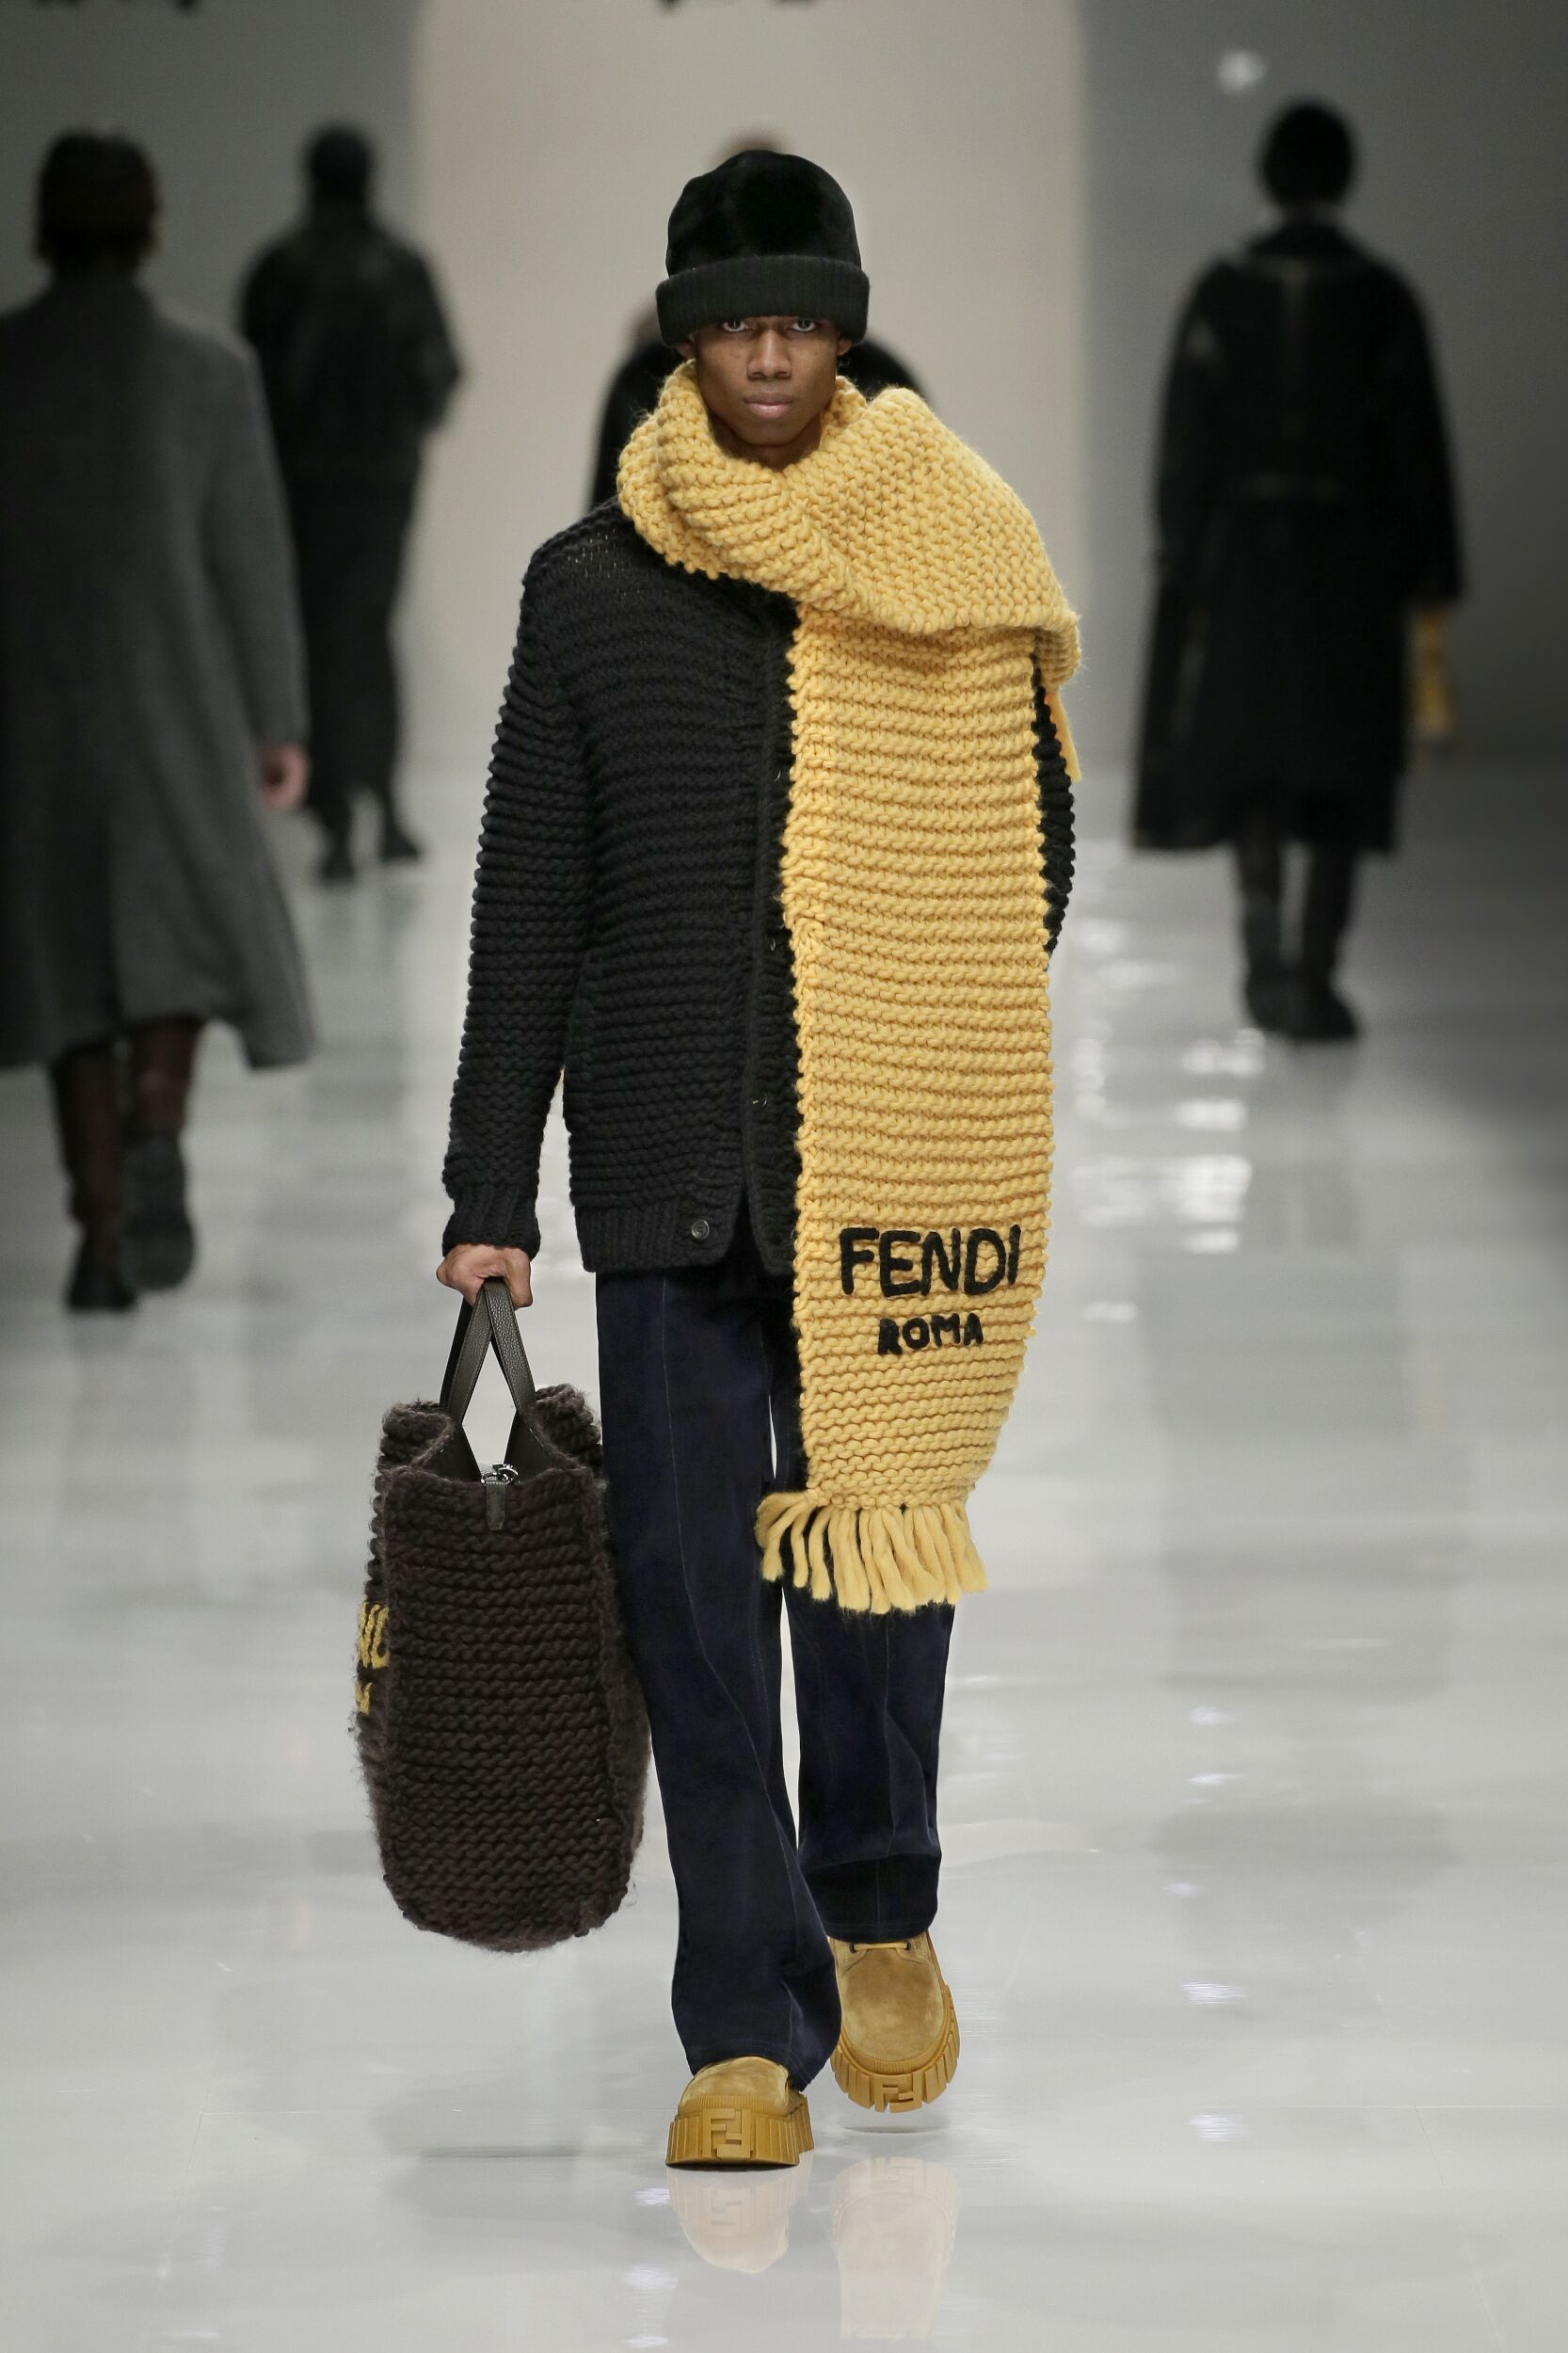 Fendi Milan Fashion Week Menswear Trends